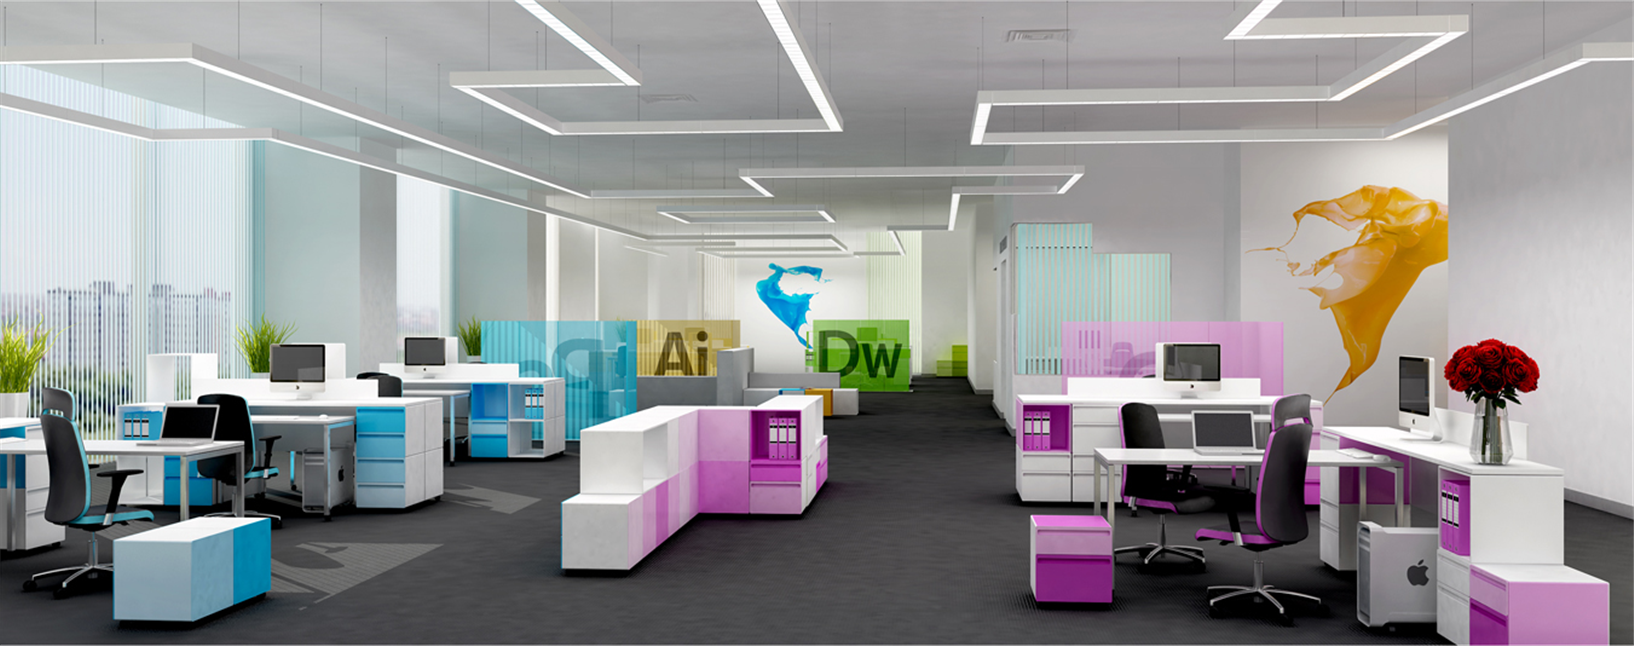 office interiors photos eye catching office interiors best office interiors